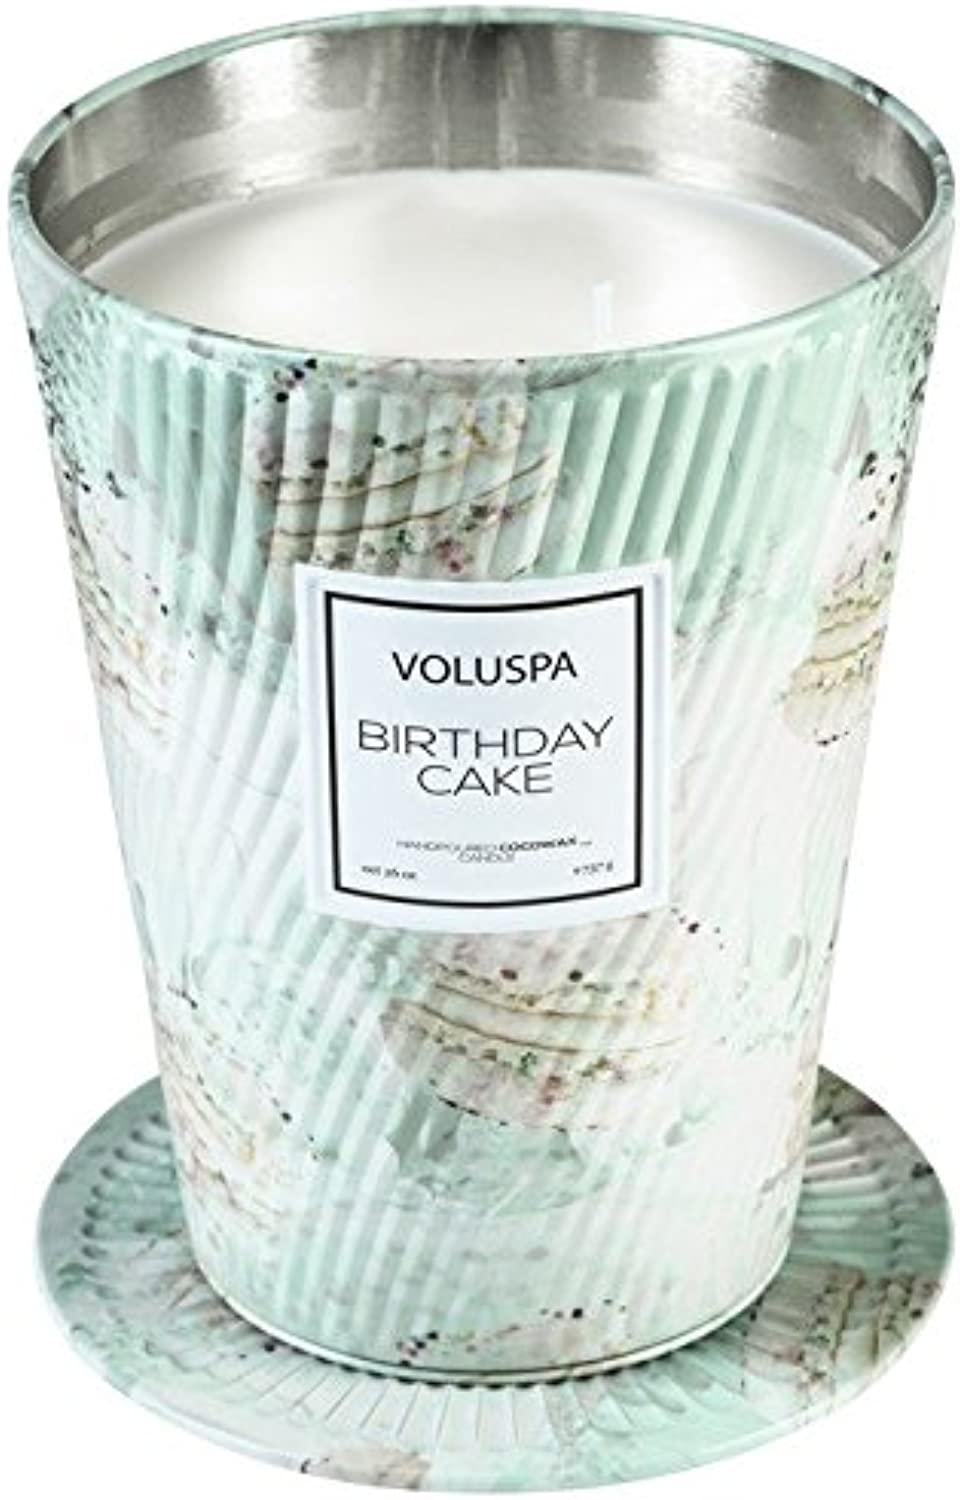 Voluspa New Birthday Cake 26 Ounce 2 Wick Candle